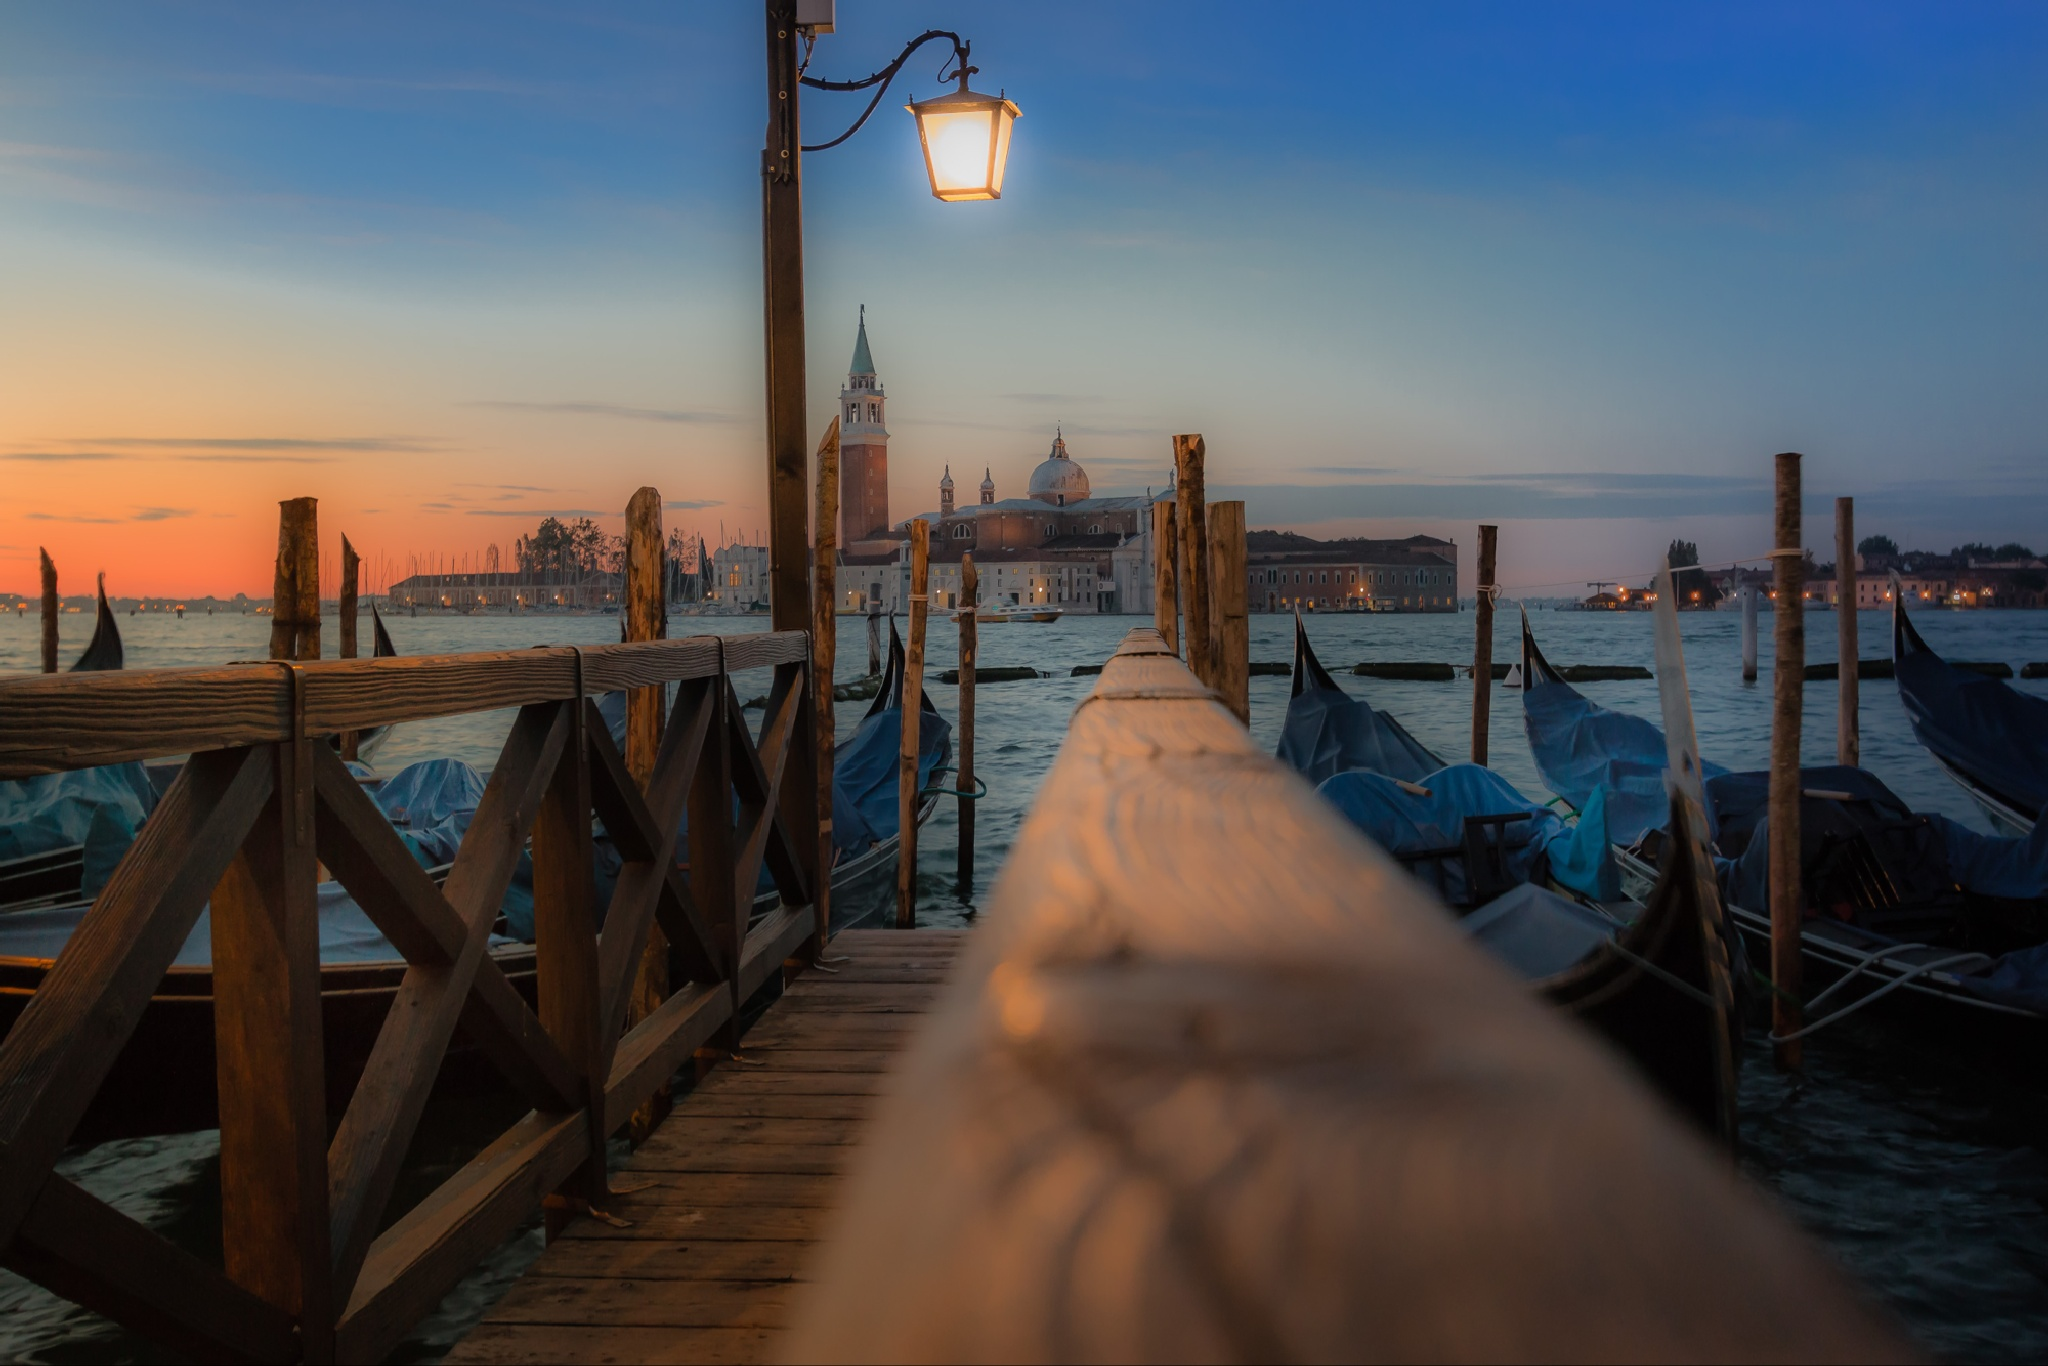 Lantern in Venice by Rob Menting